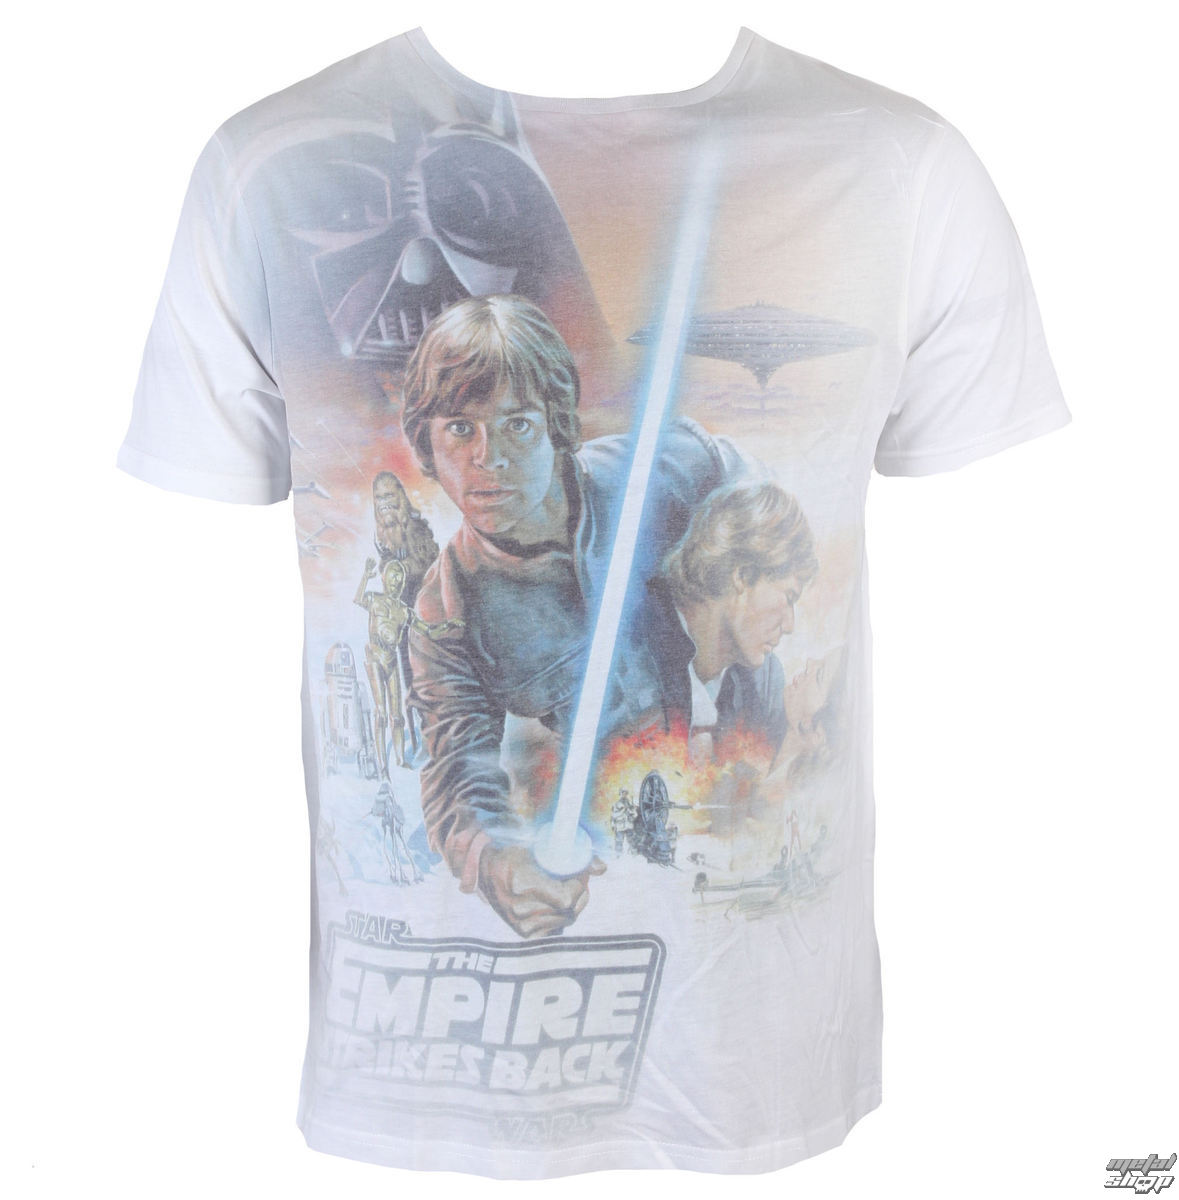 tričko INDIEGO Star Wars Luke Skywalker Sublimation šedá bílá S